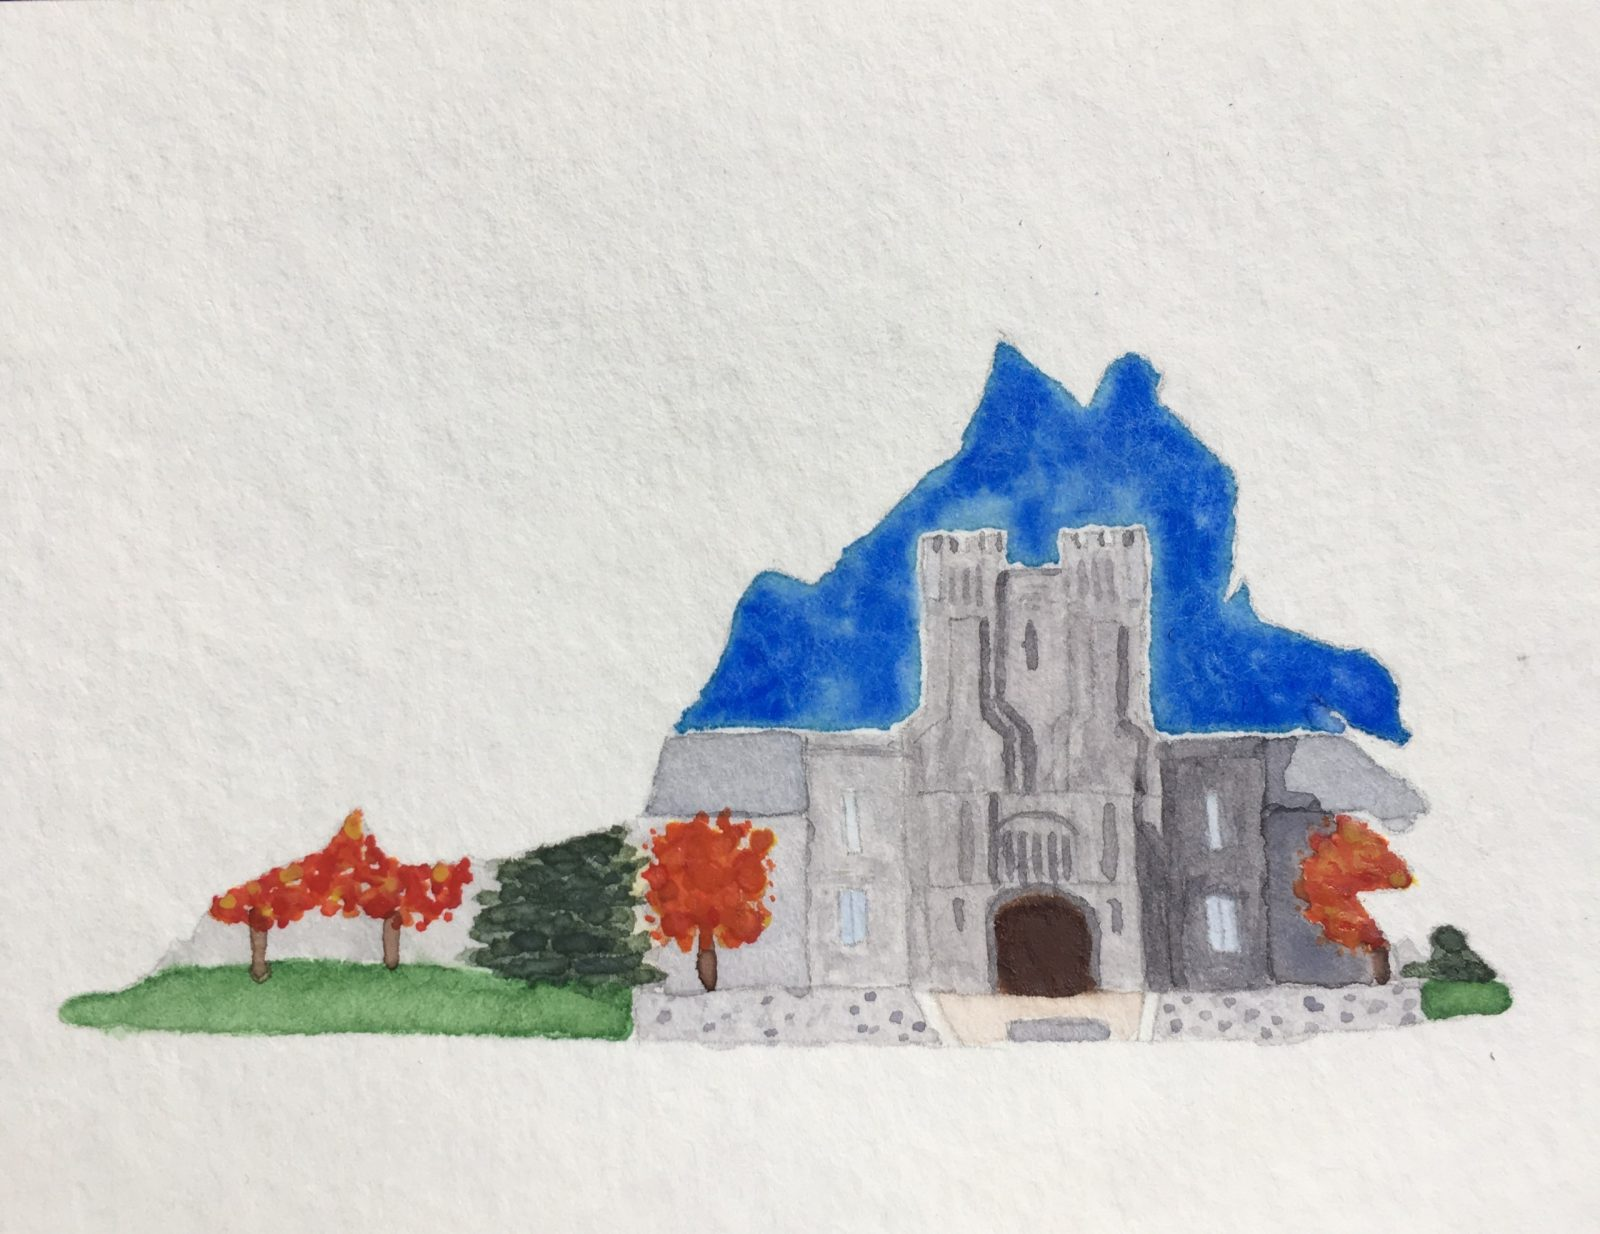 A painting of Virginia Tech's Burruss Hall within the outline of the state of Virginia